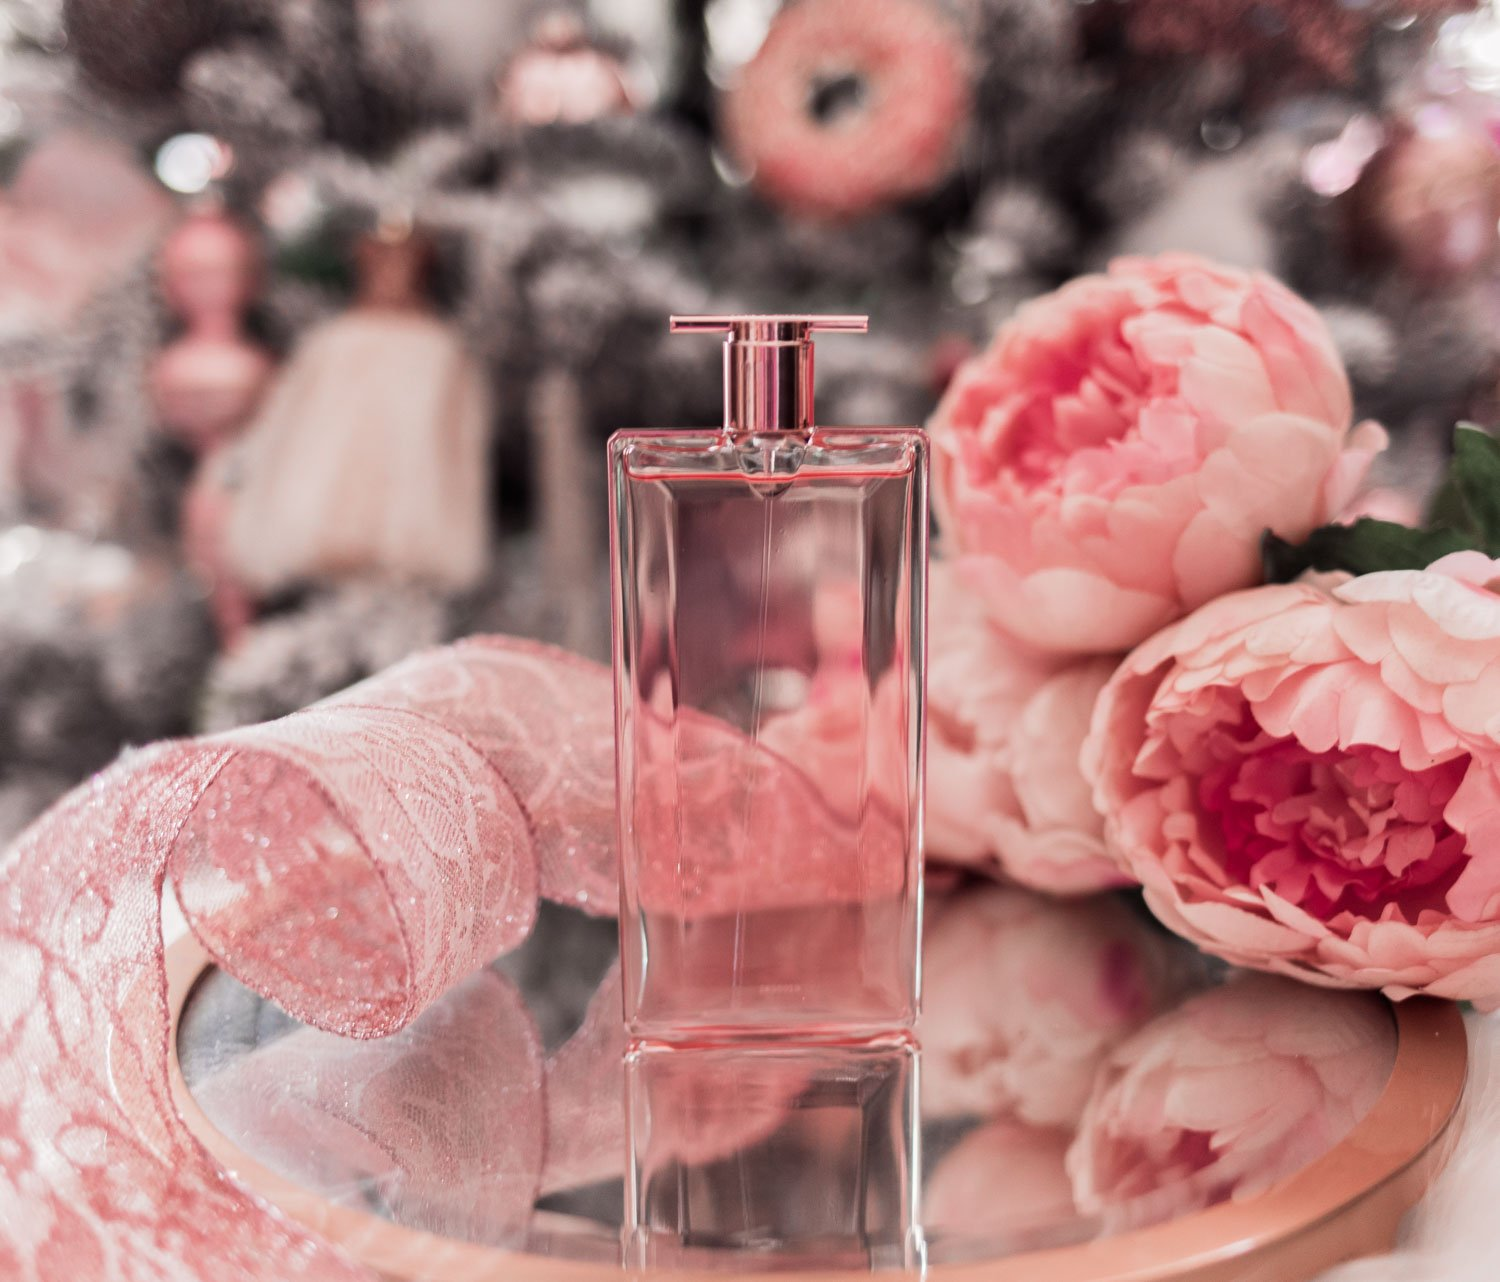 Fashion Blogger Elizabeth Hugen shares her Girly Girl Holiday Gift Guide including Lancome Idole